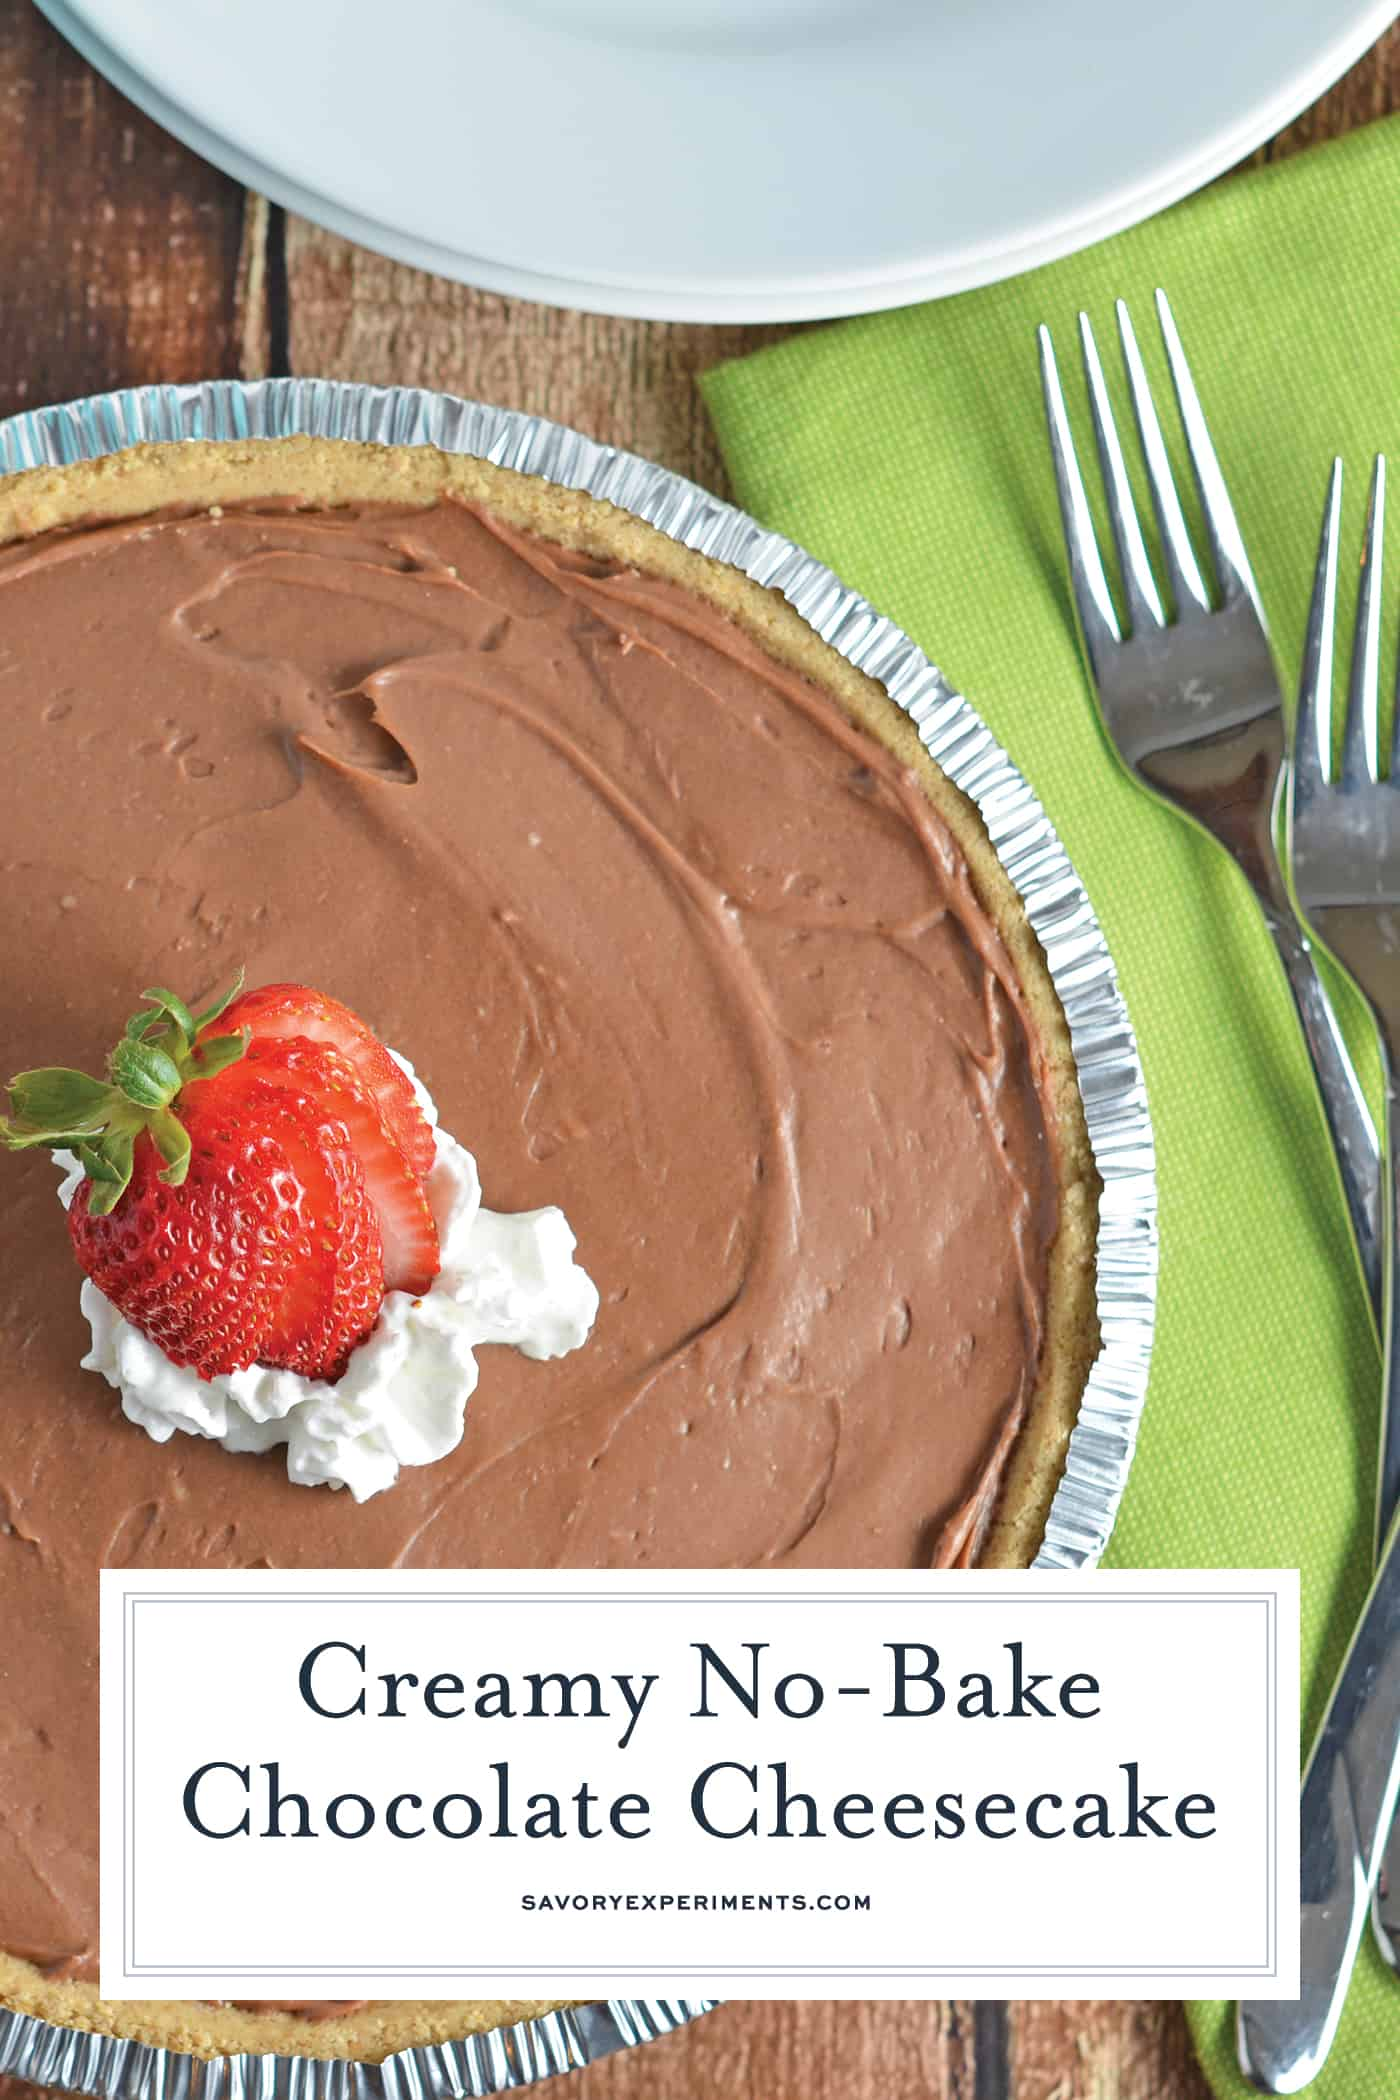 Using a premade crust, the ultra creamy No-Bake Chocolate Cheesecake uses just 5 ingredients and takes minutes to prepare. Make ahead and take to your next party! #nobakedesserts #chocolatecheesecake #nobakecheesecake www.savoryexperiments.com